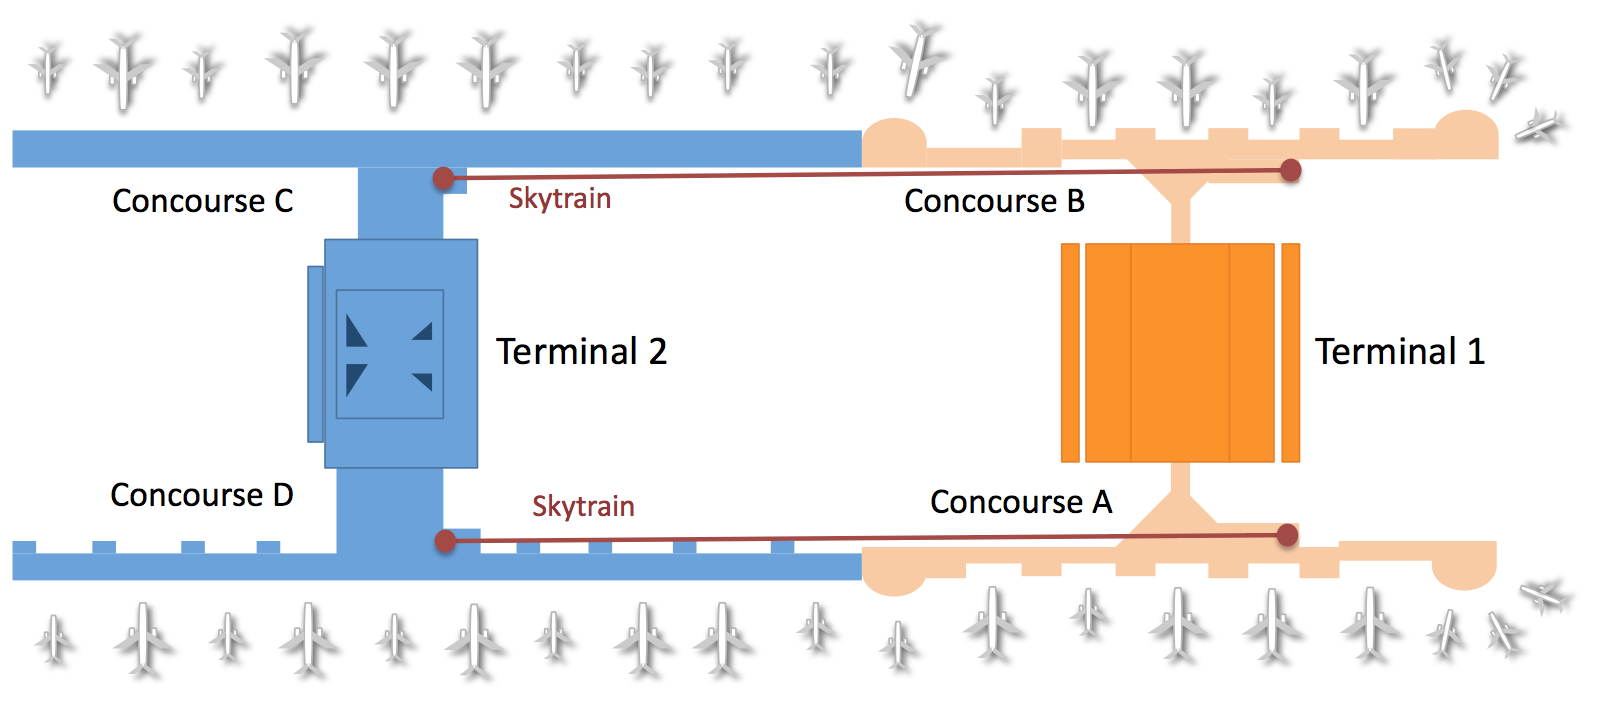 Click to open the airport's facilities and gate map